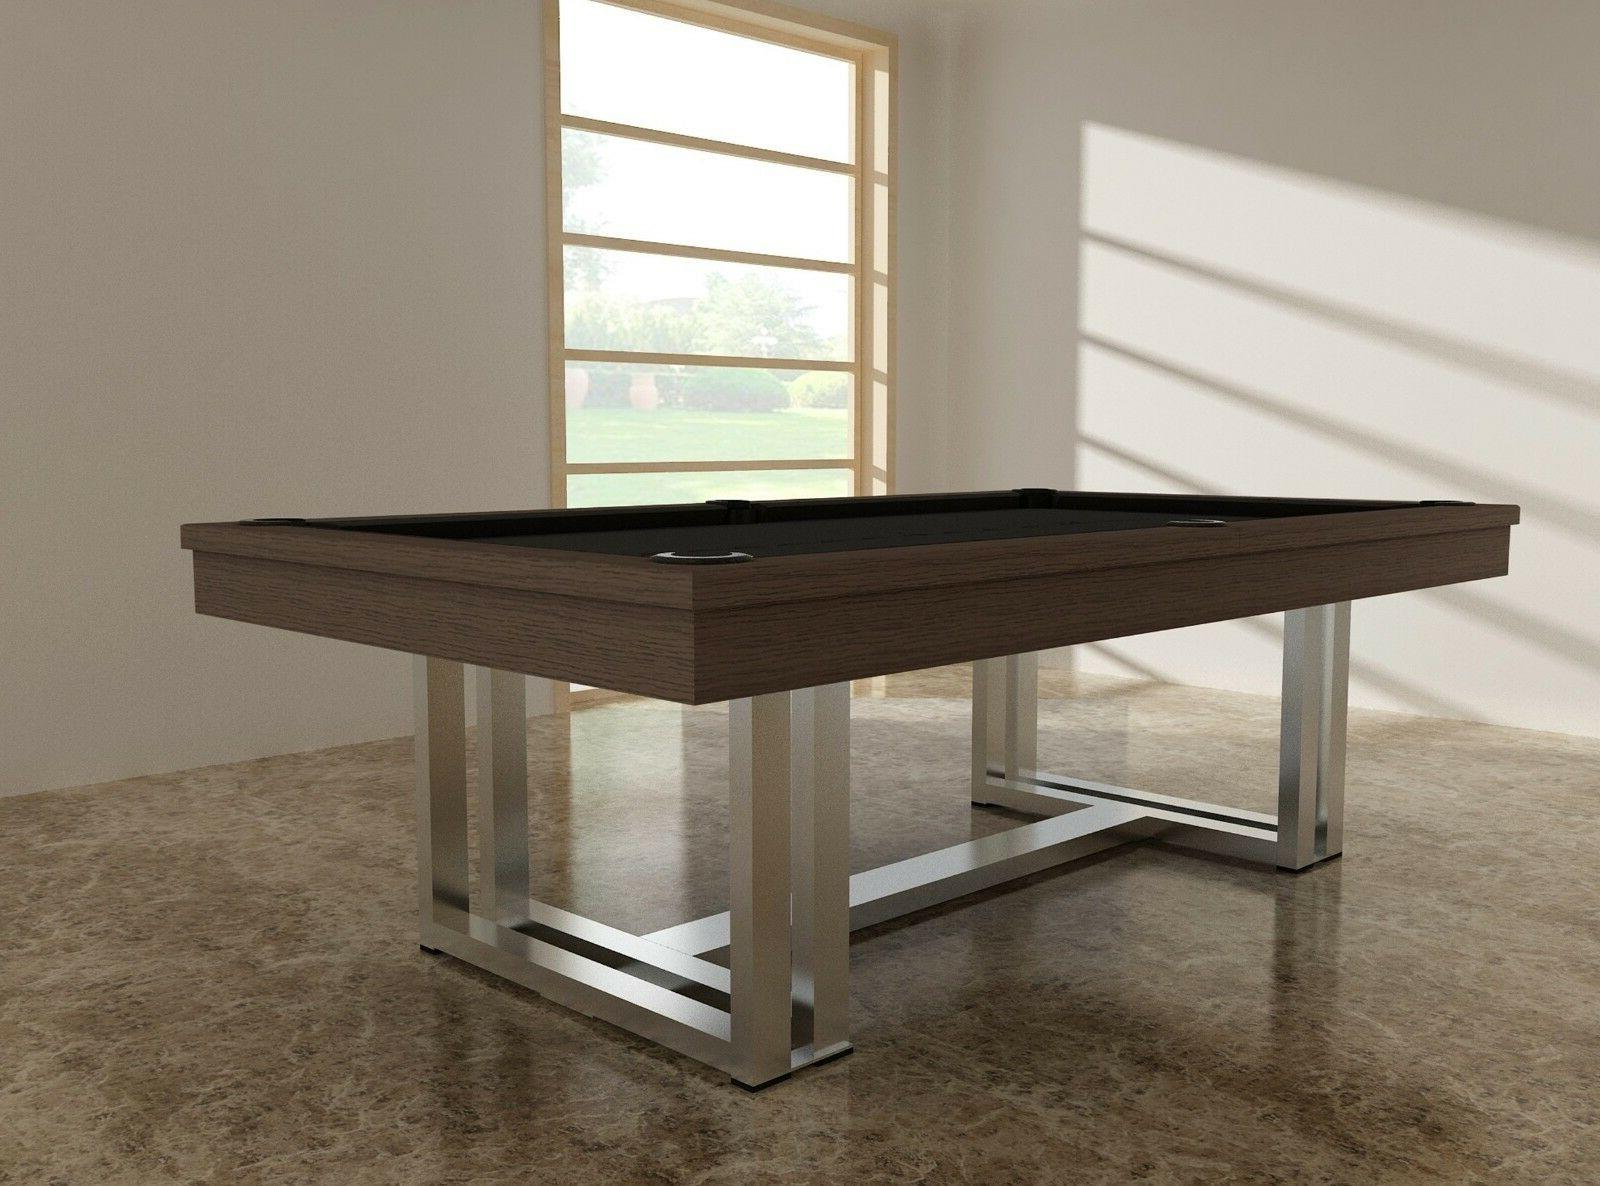 8 foot Trillium Table | | Free shipping